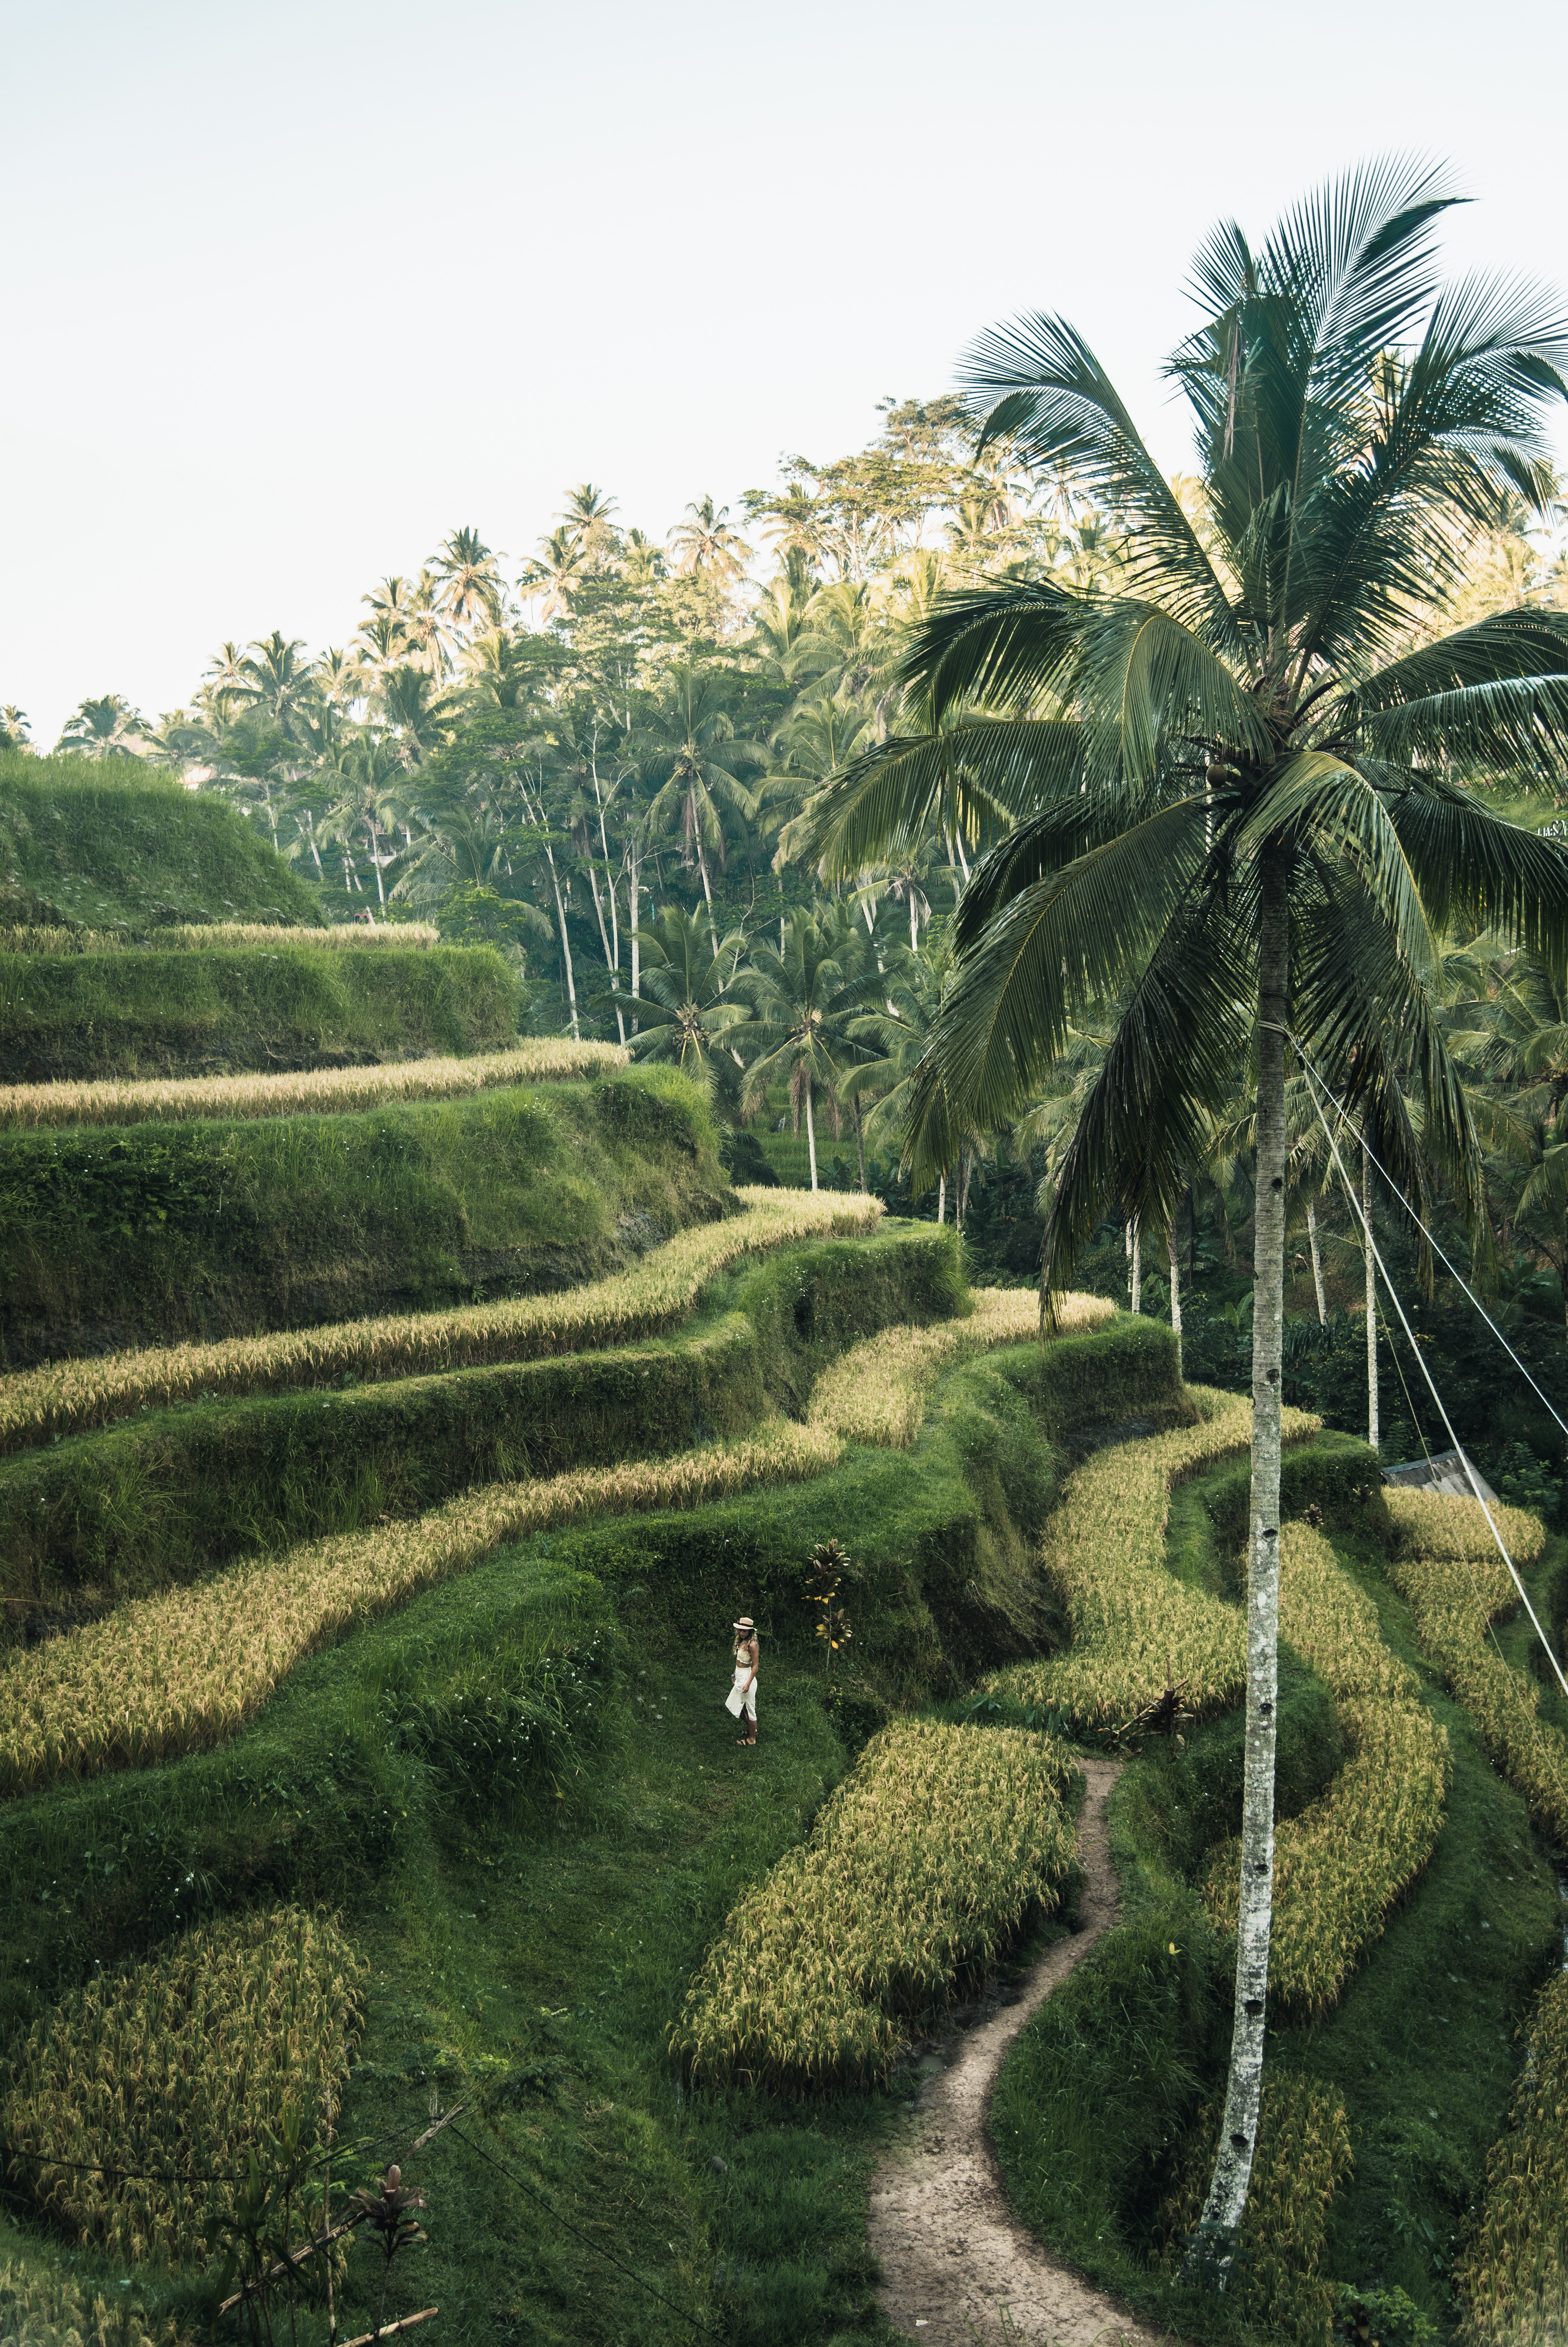 A person standing on rice terraces